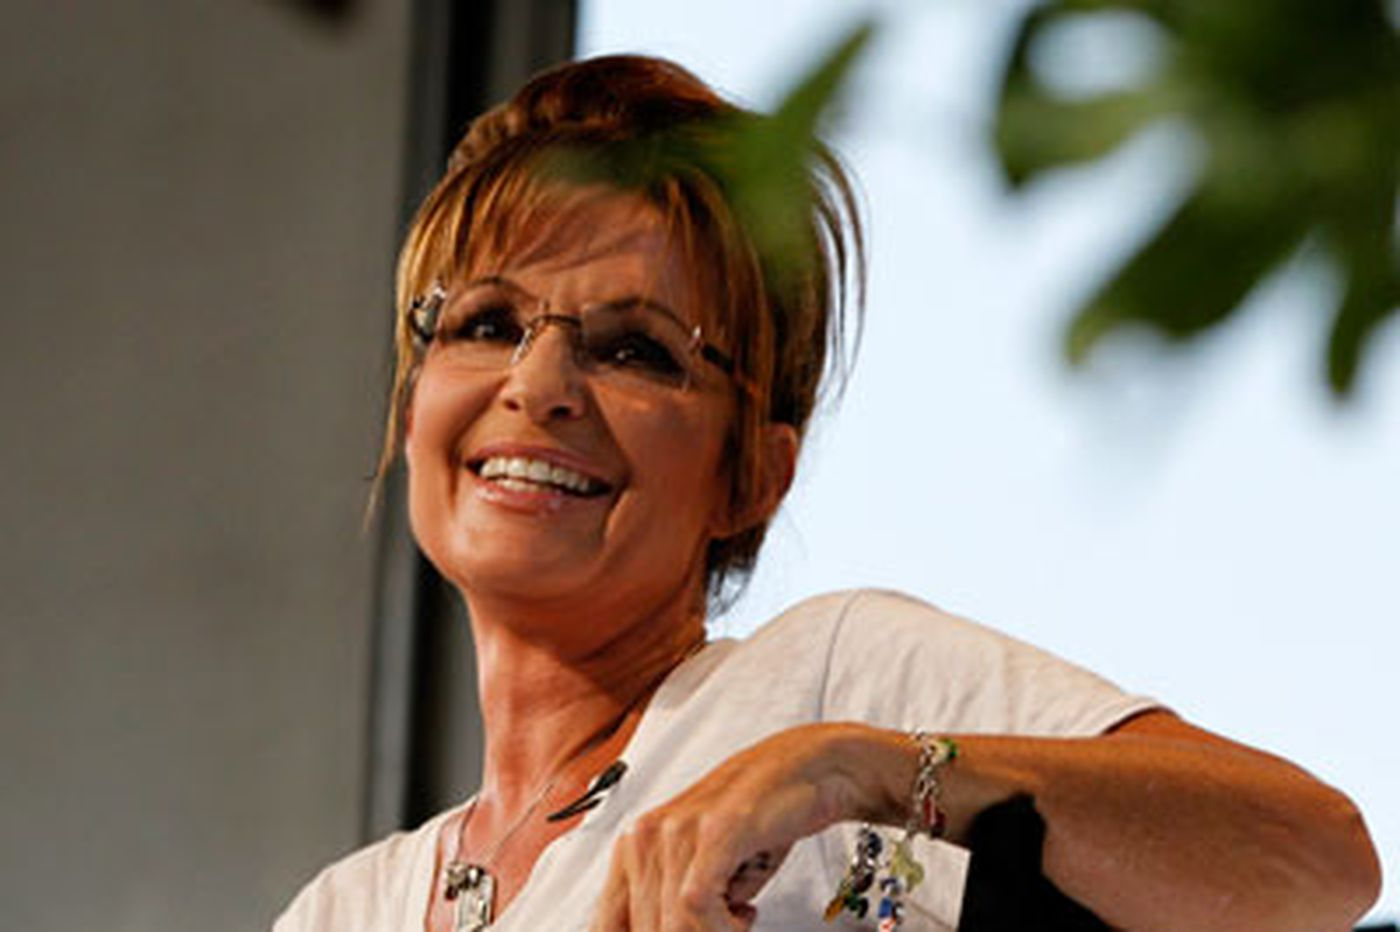 Poolside in L.A., Sarah Palin pushes her hubby's TV show